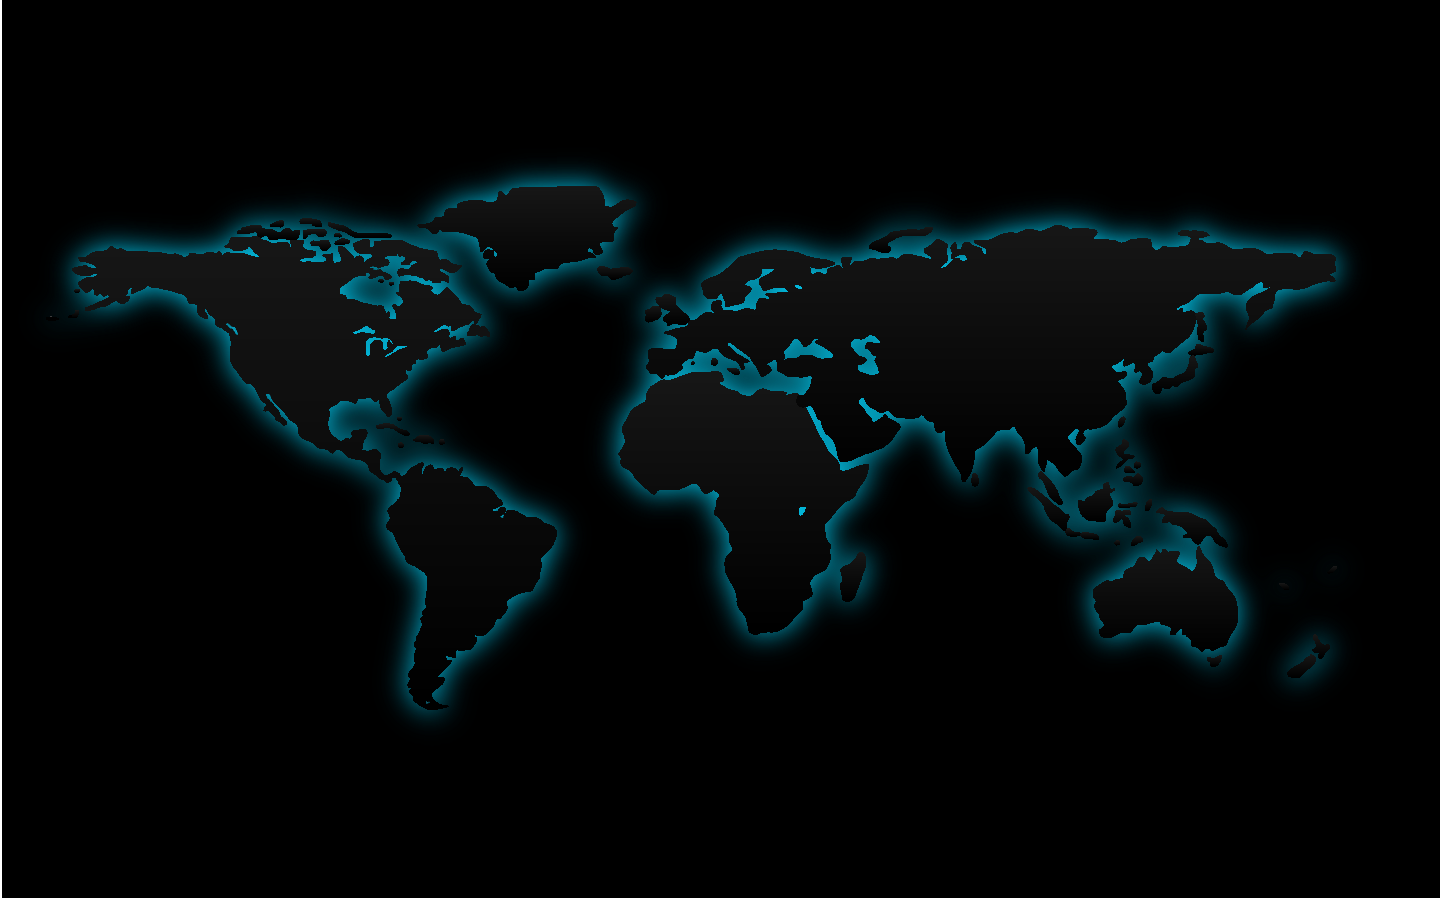 GuruBlog - Worldmap Desktop Image on